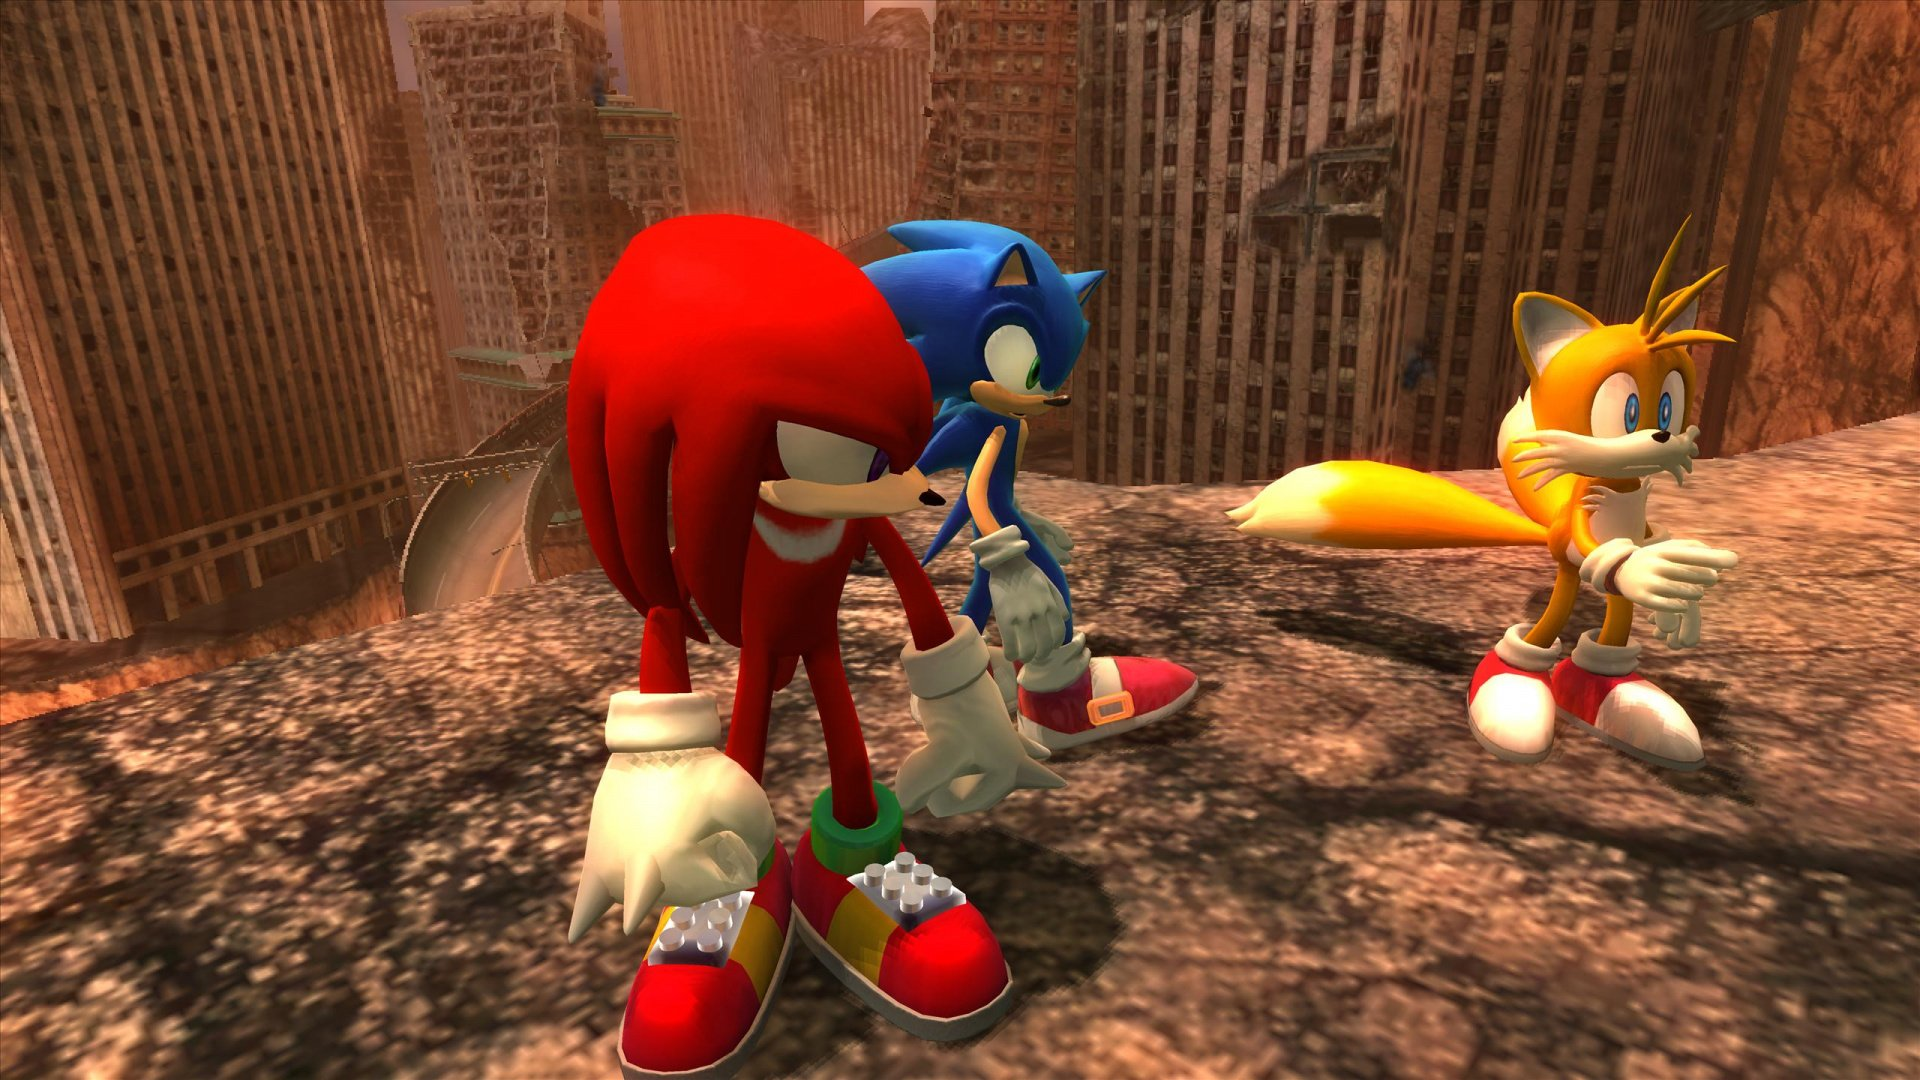 Sonic The Hedgehog (PS3 / PlayStation 3) Game Profile